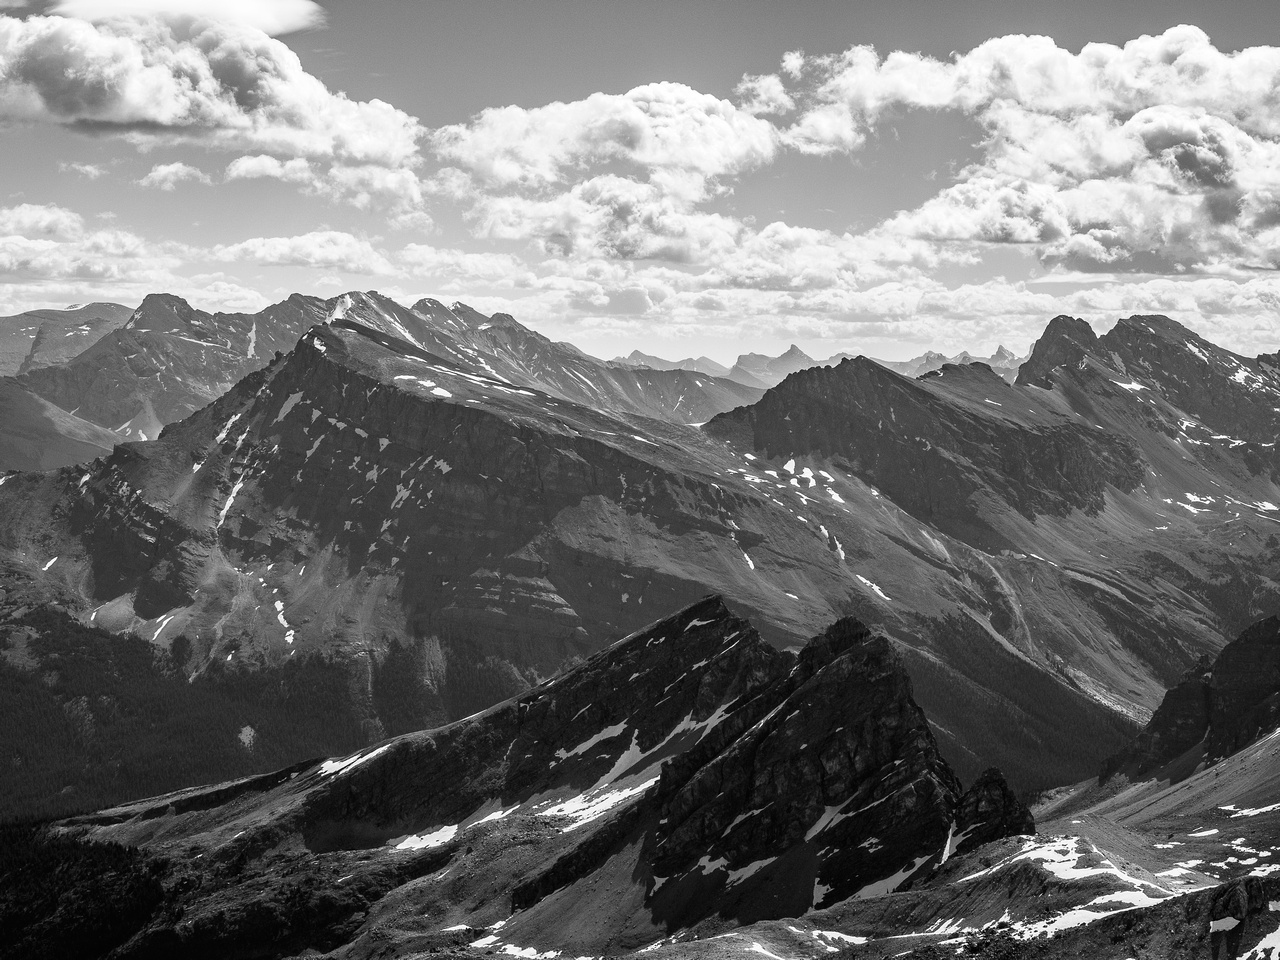 Marmot Mountain is the small one in the foreground. Bobac at distant right.